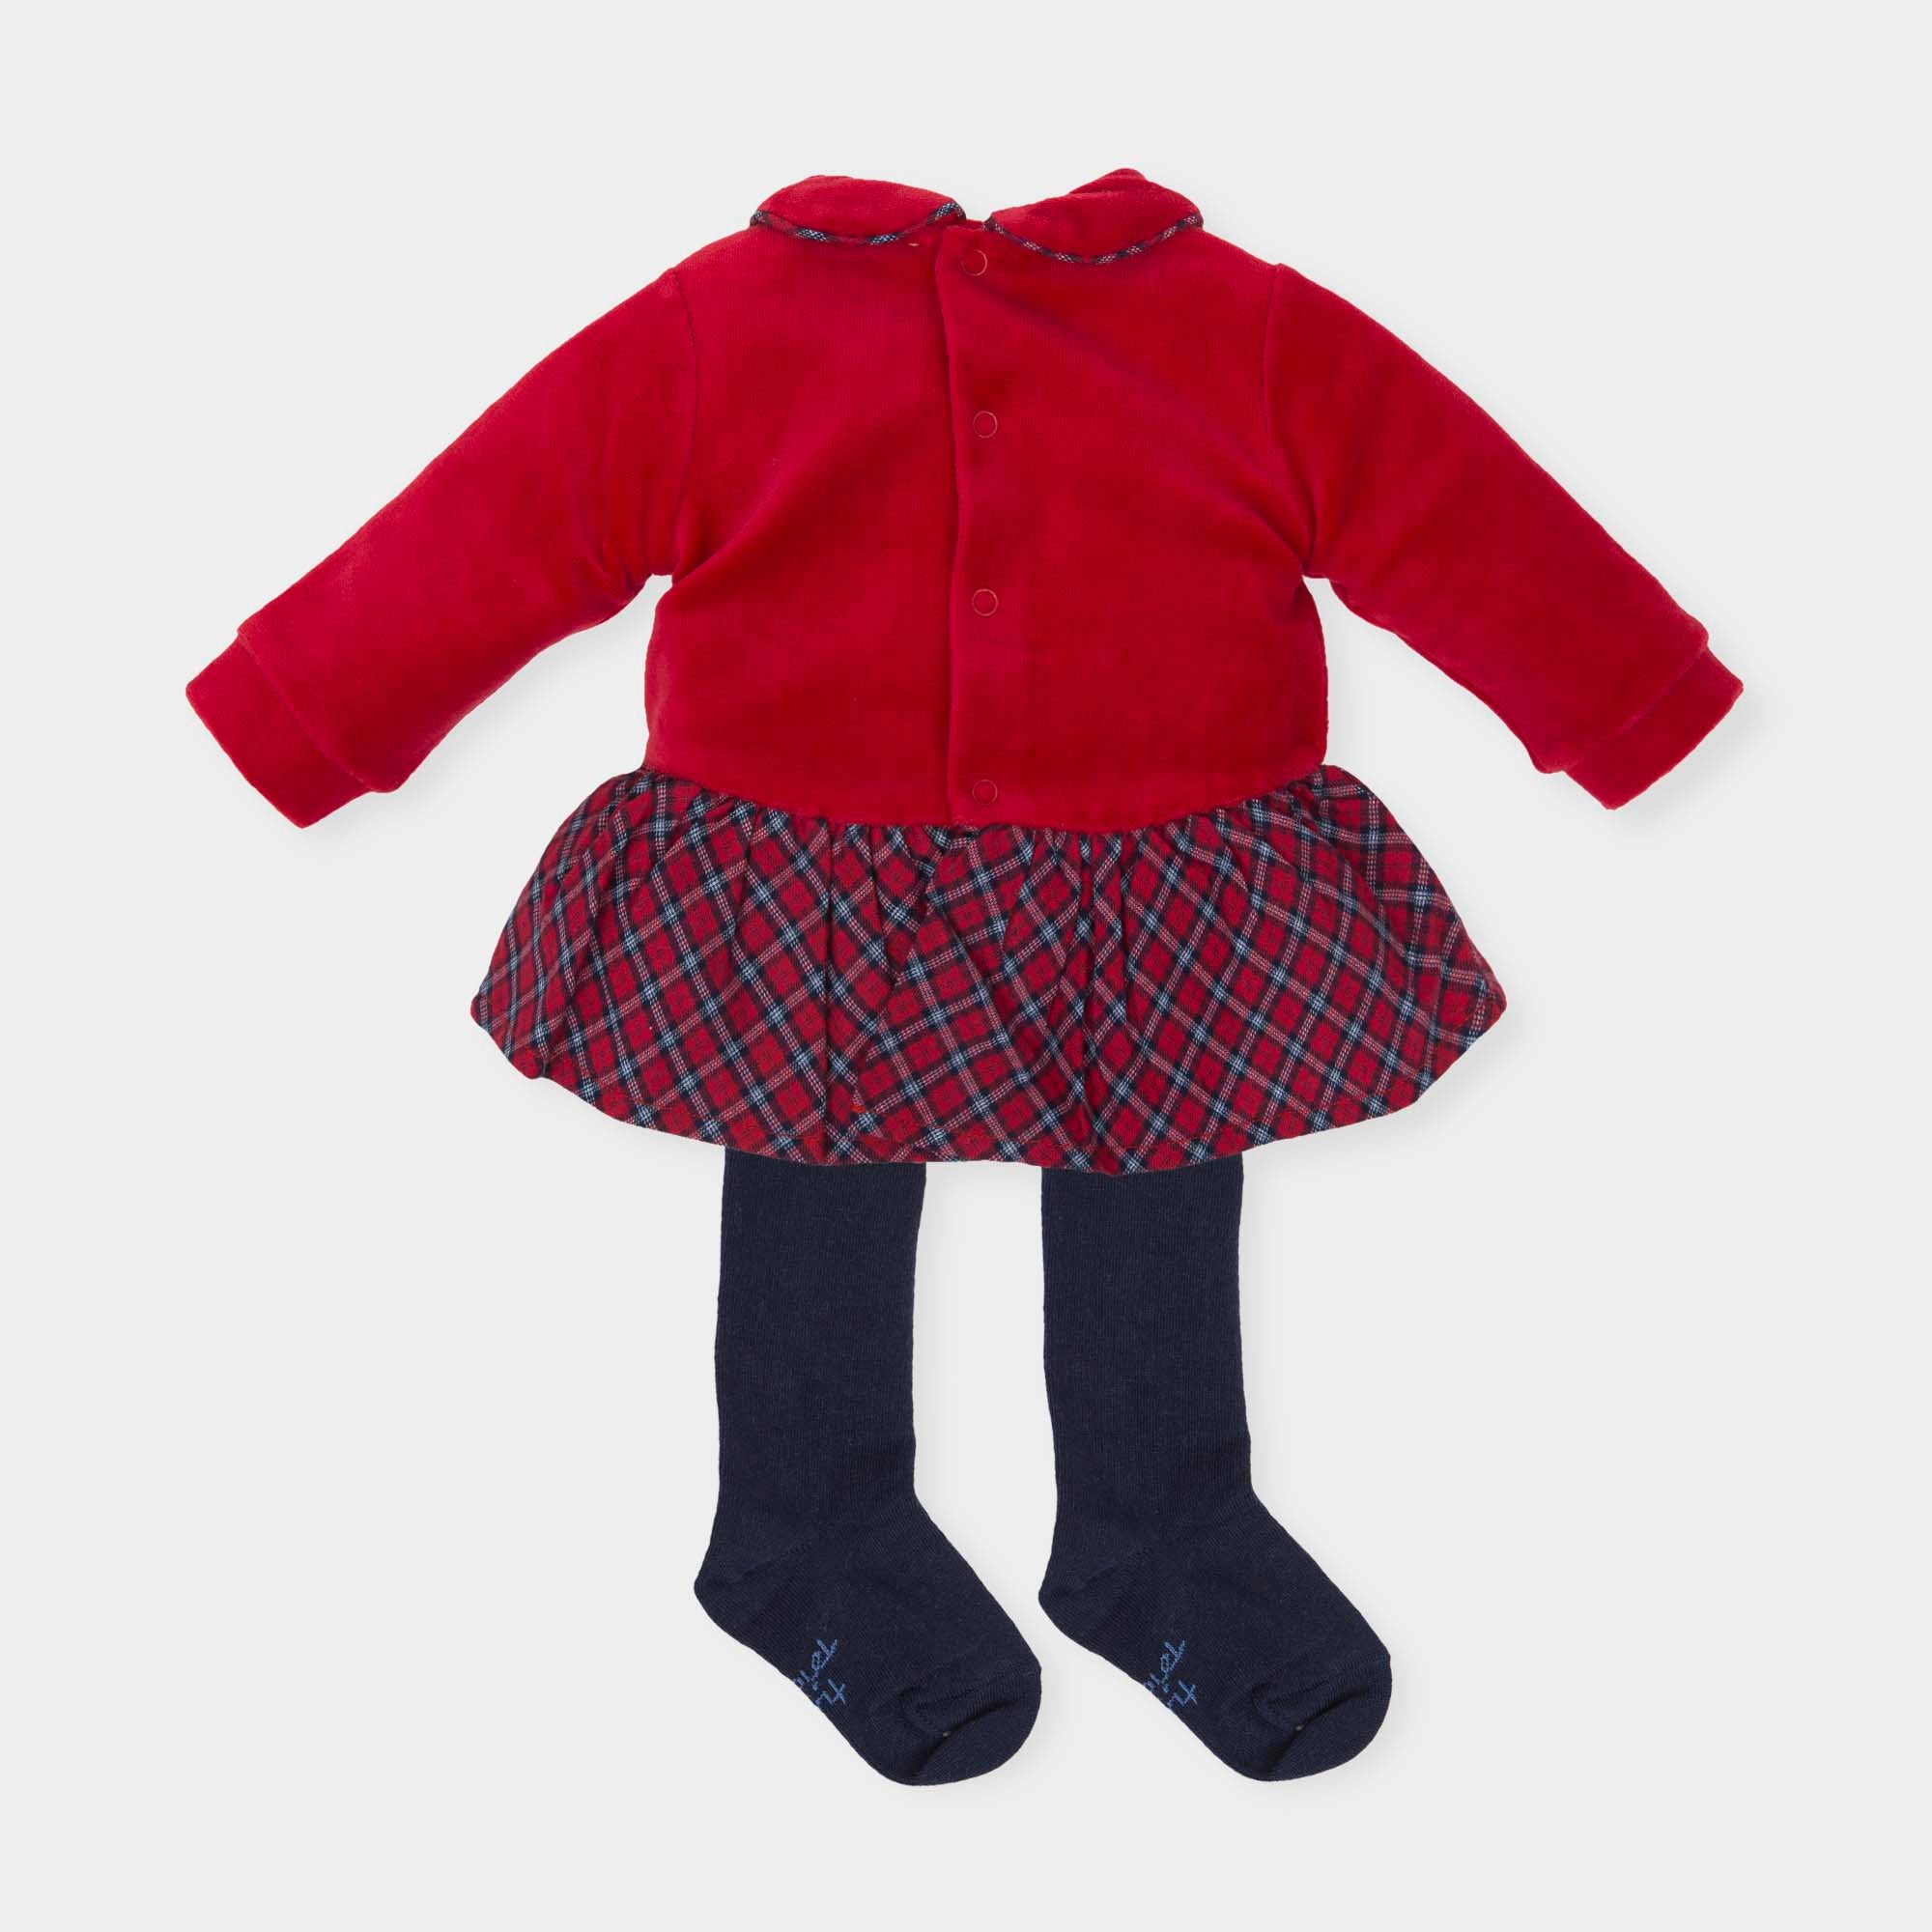 321a97542 AW18 Tutto Piccolo Girls Red Tartan Dress   Tights 5289 – Liquorice Kids